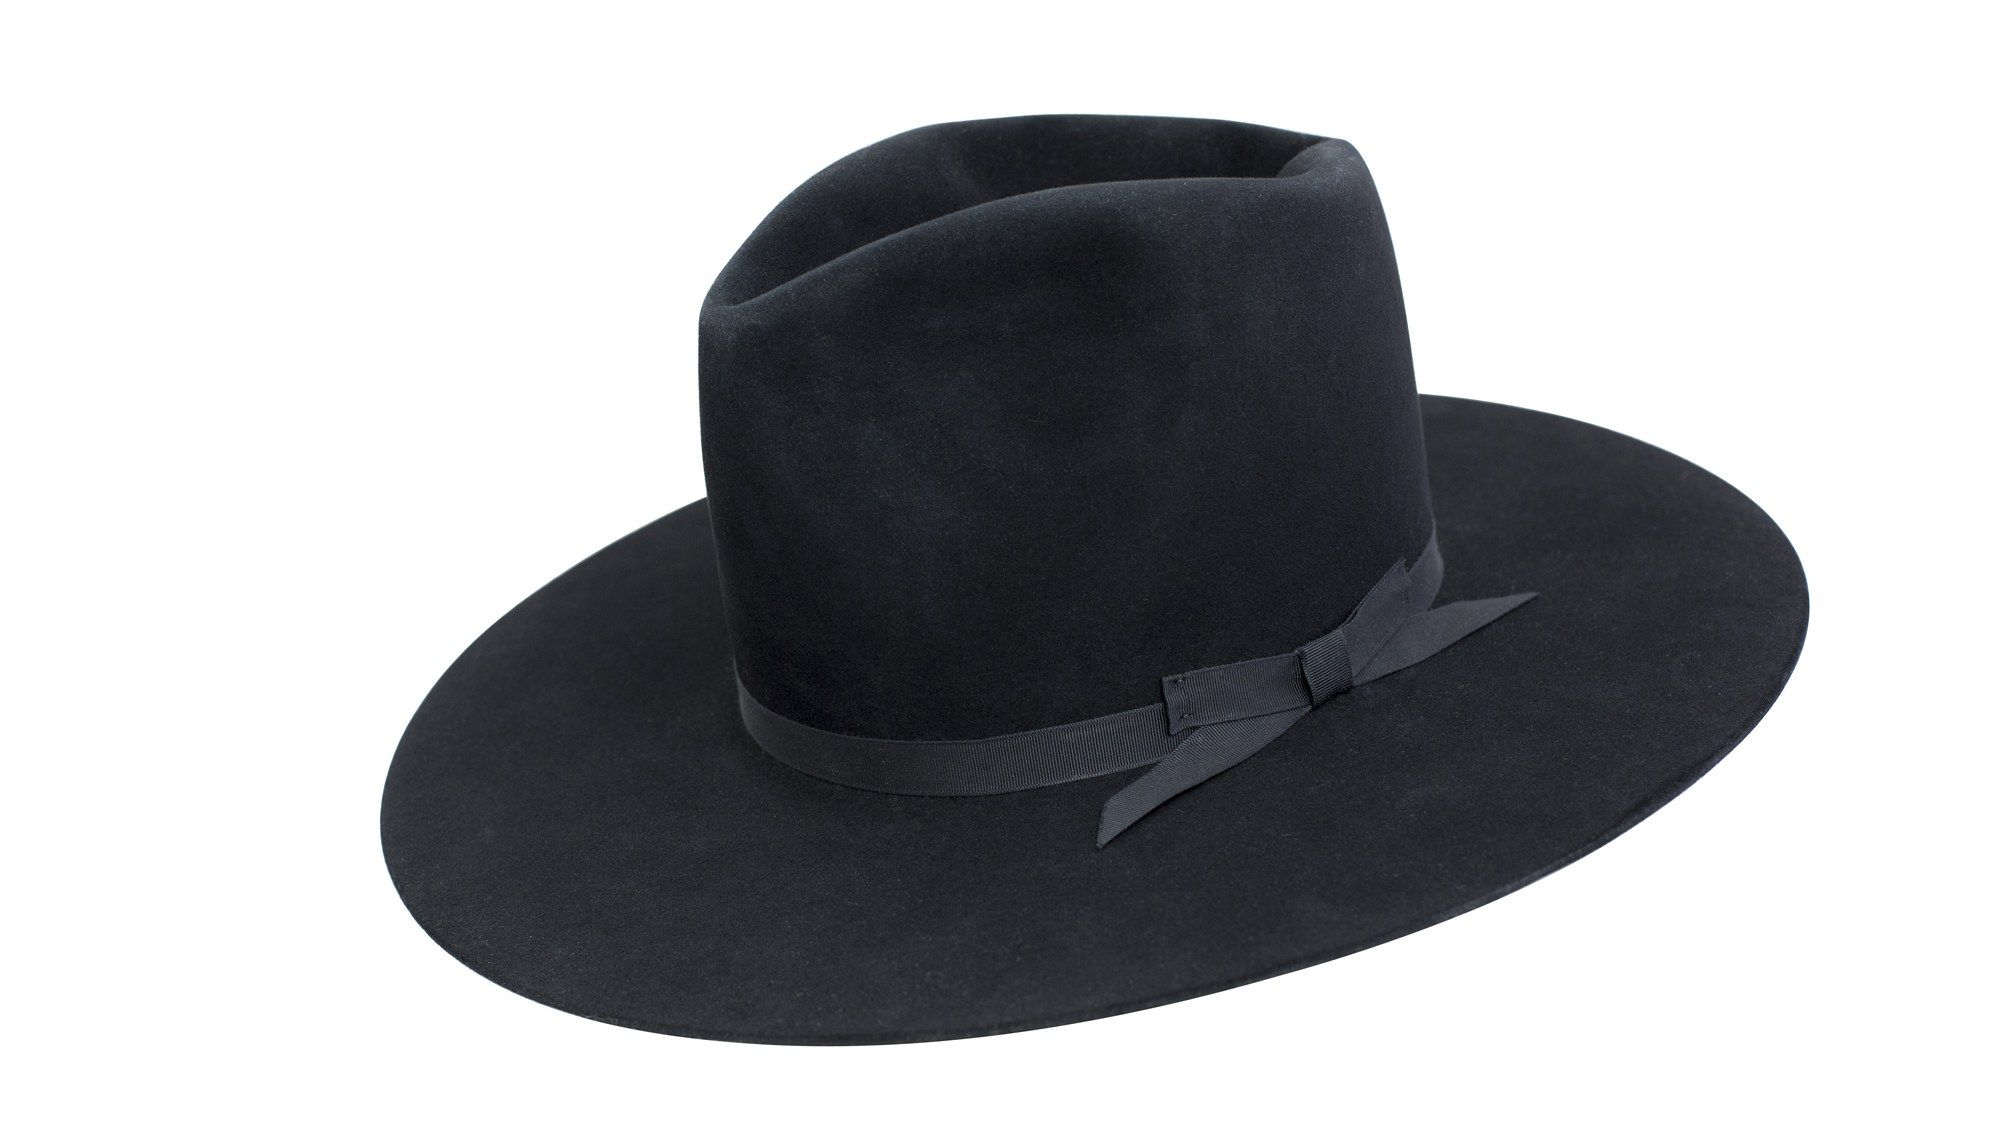 17e3a1bb0de The Cowboy Hat Is Getting a Modern Revamp for Fashion s City ...